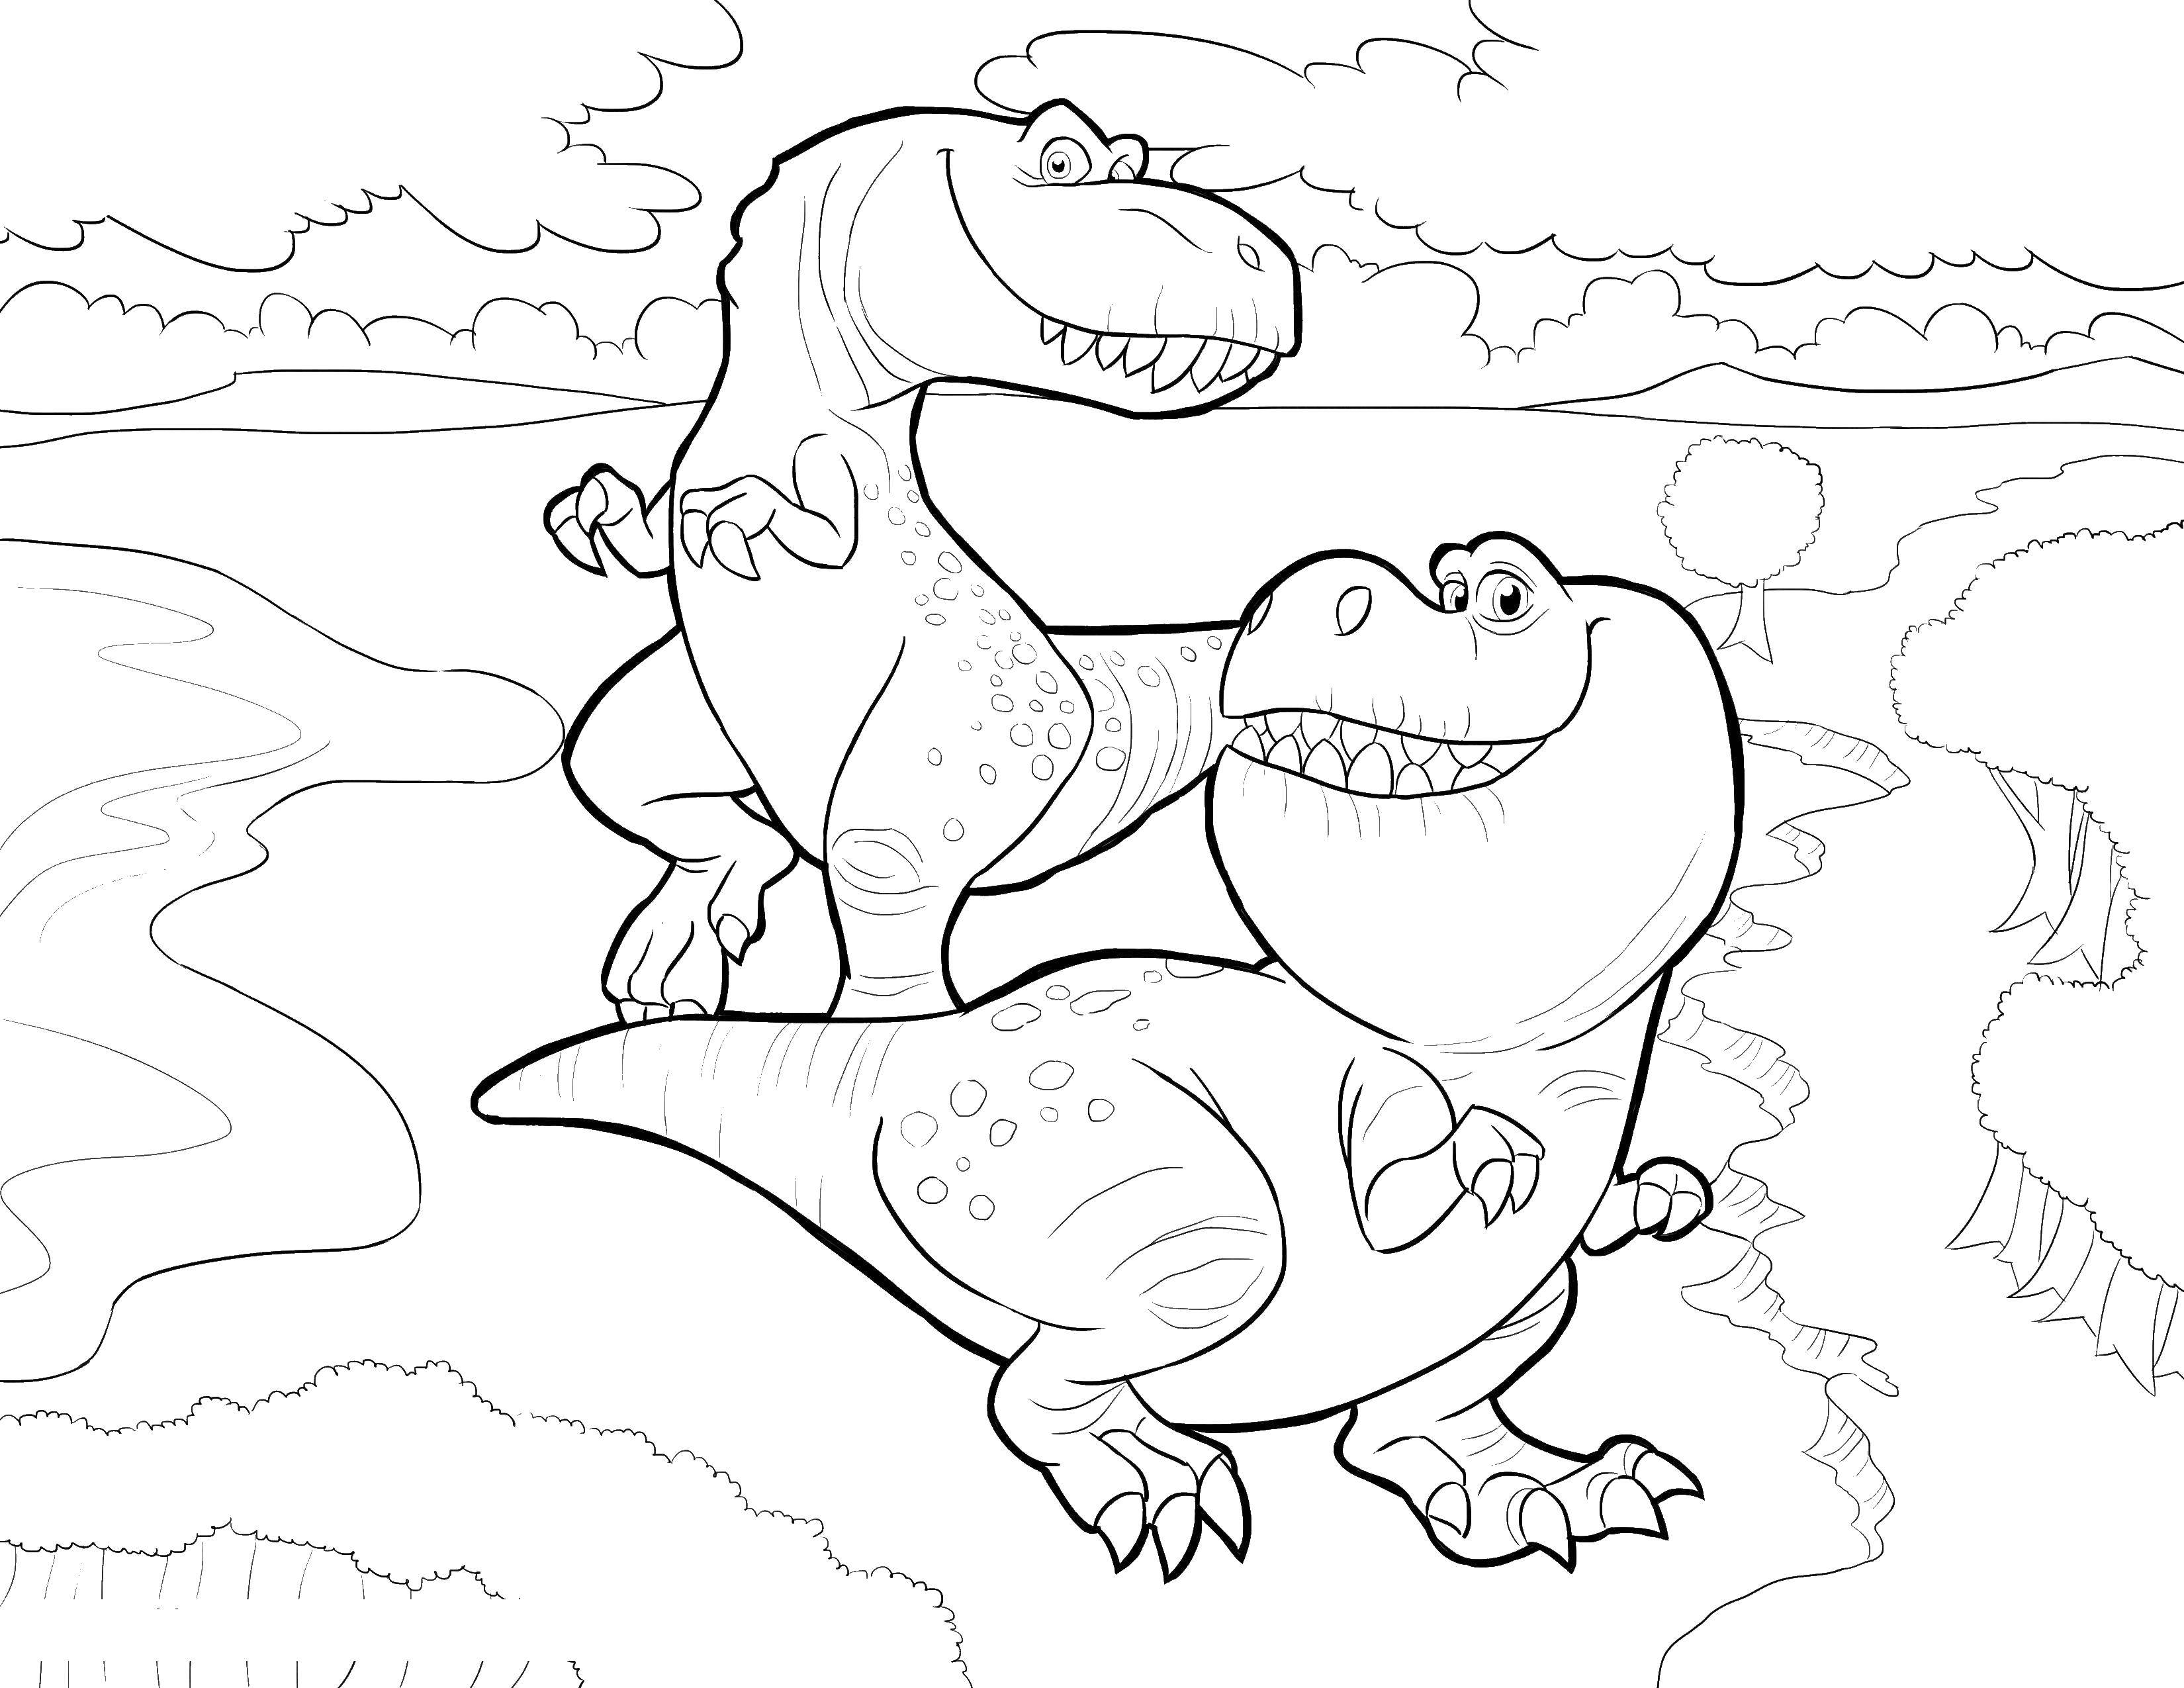 Coloring Funny friends Dinos. Category dinosaur. Tags:  Dinosaurs.